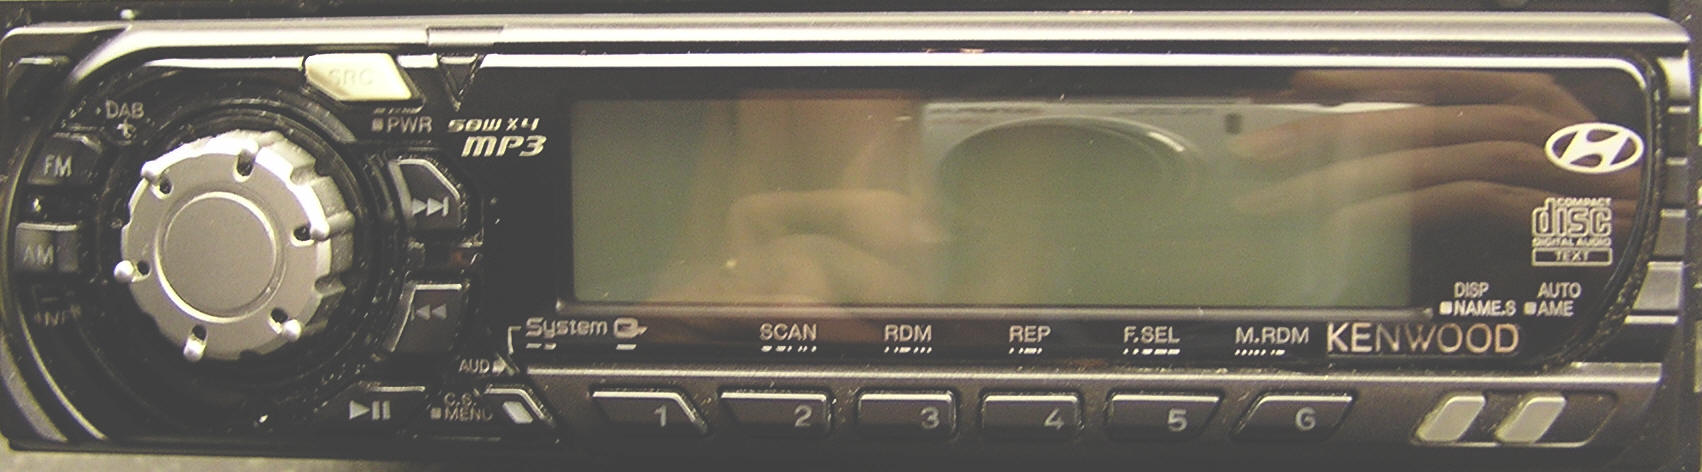 Hyundai Elantra Car Stereo Removal and Repair